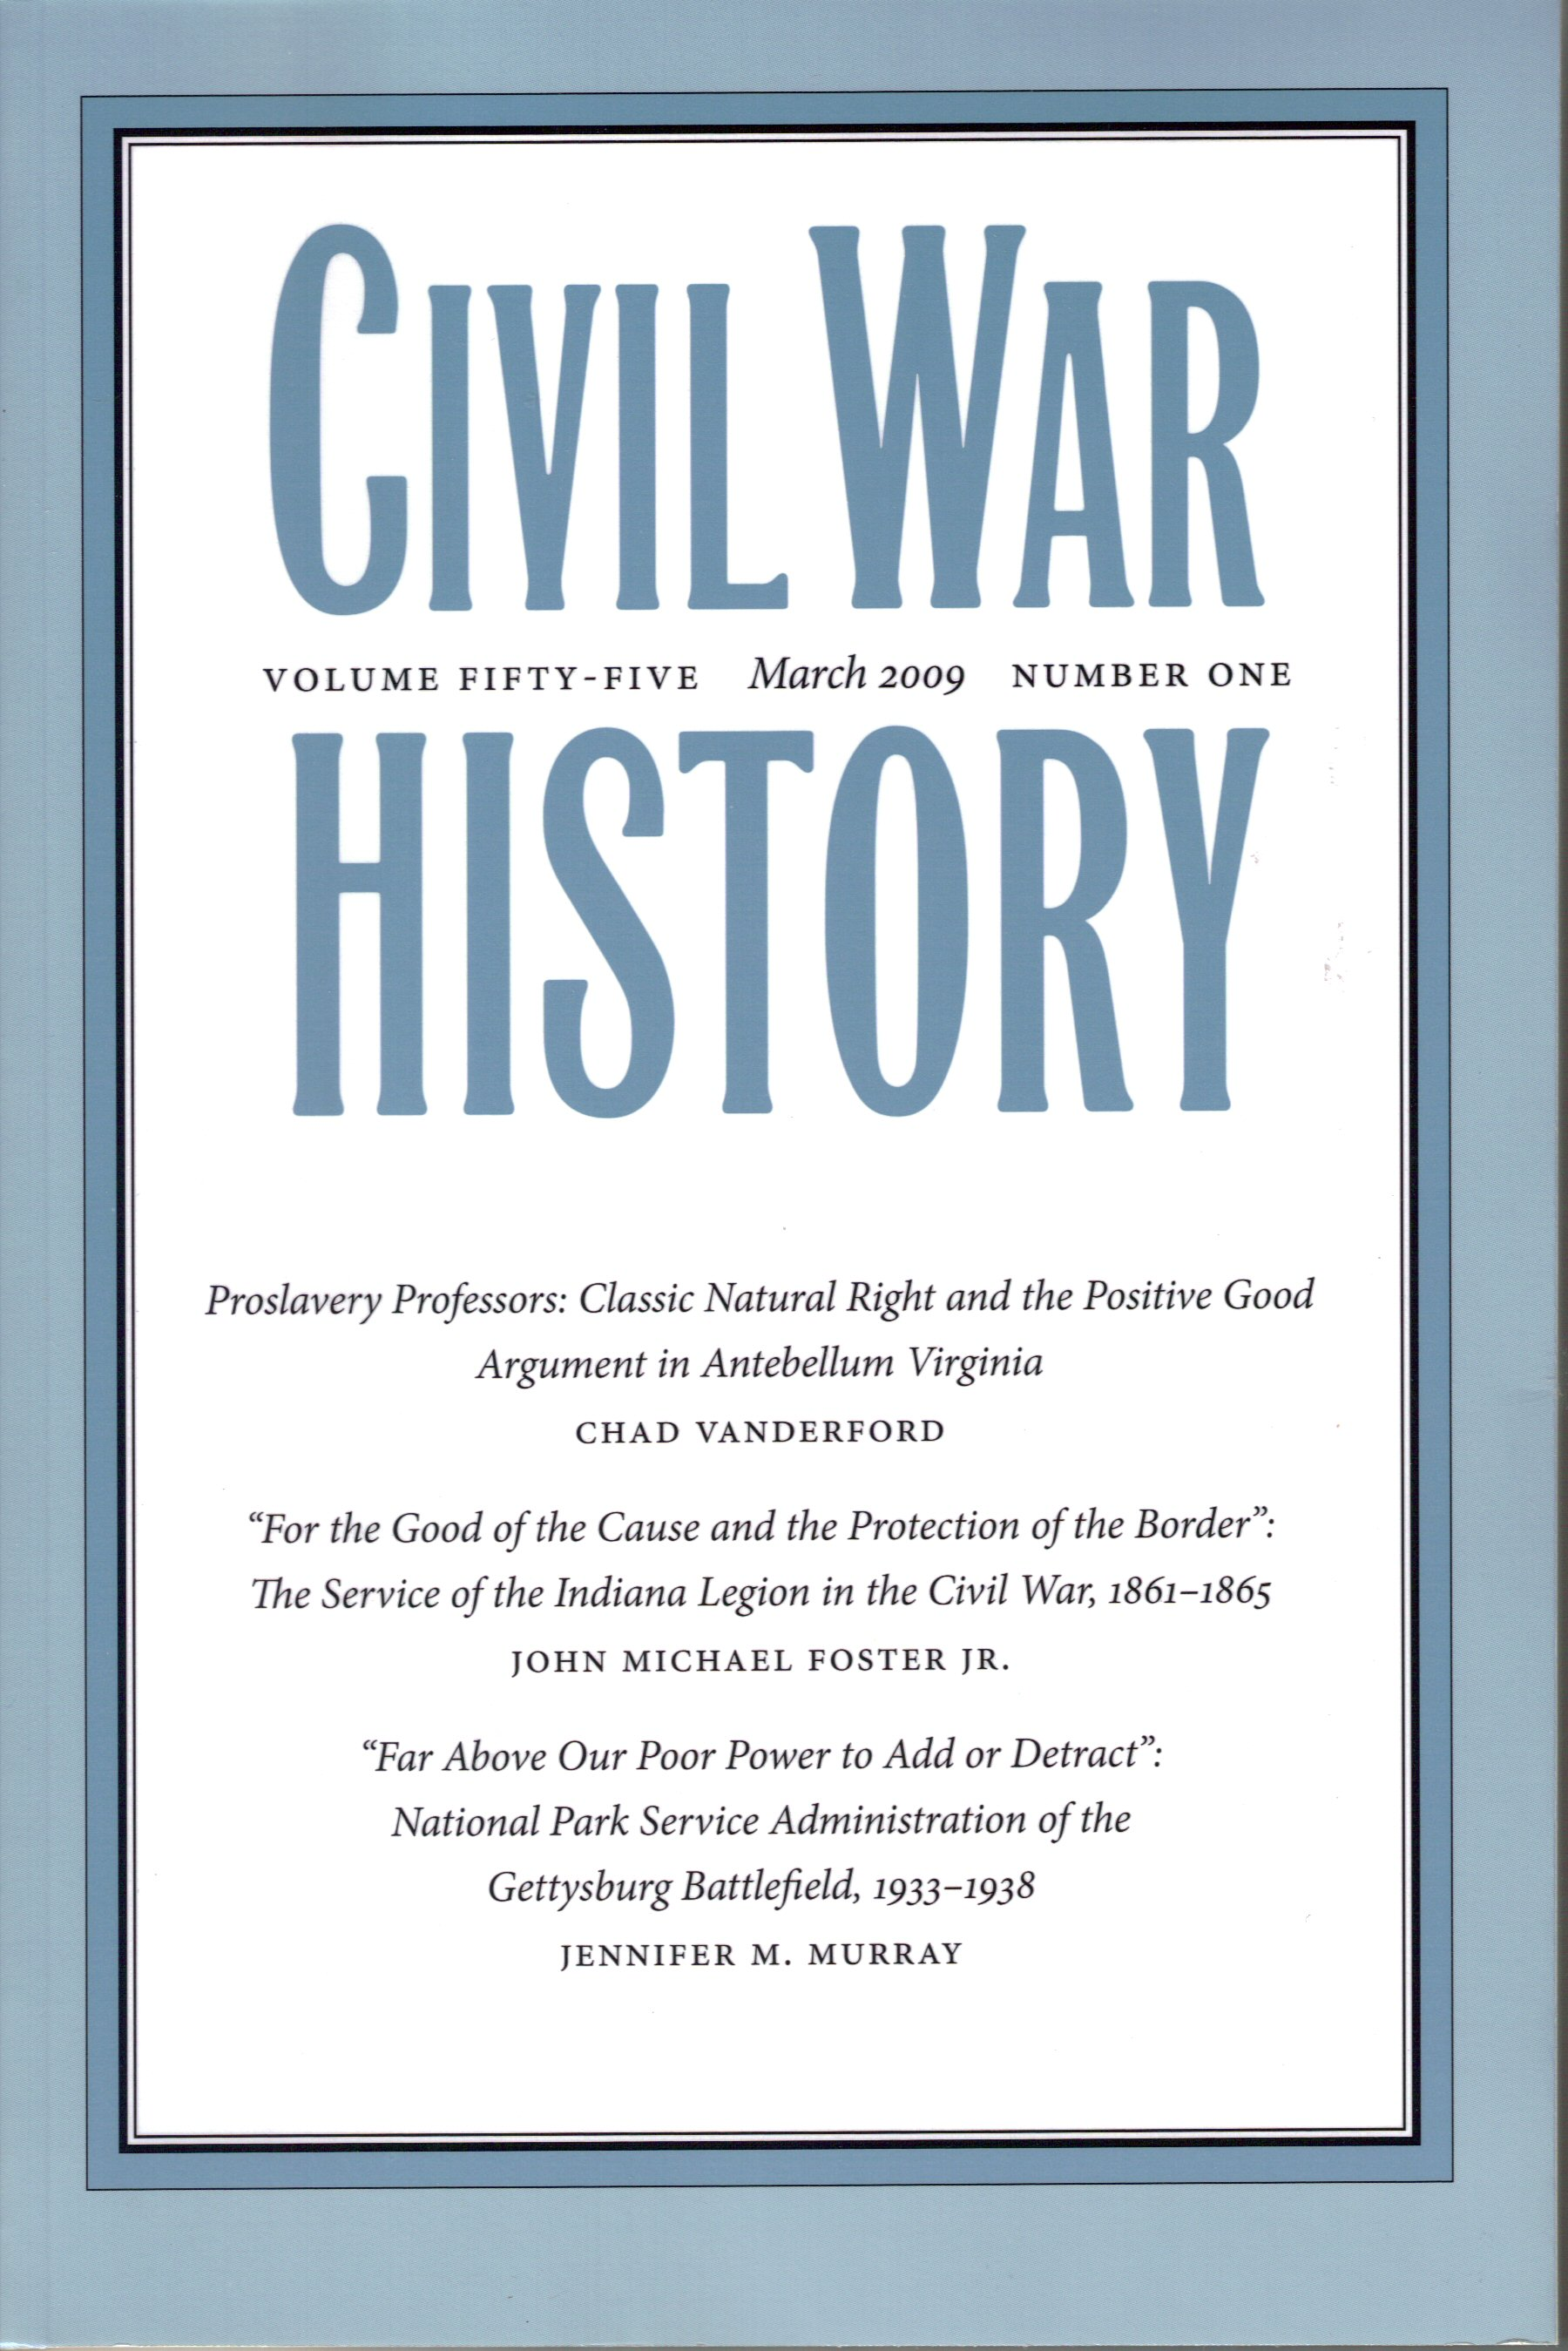 Civil War History, Volume 55, Number 1 (March 2009)